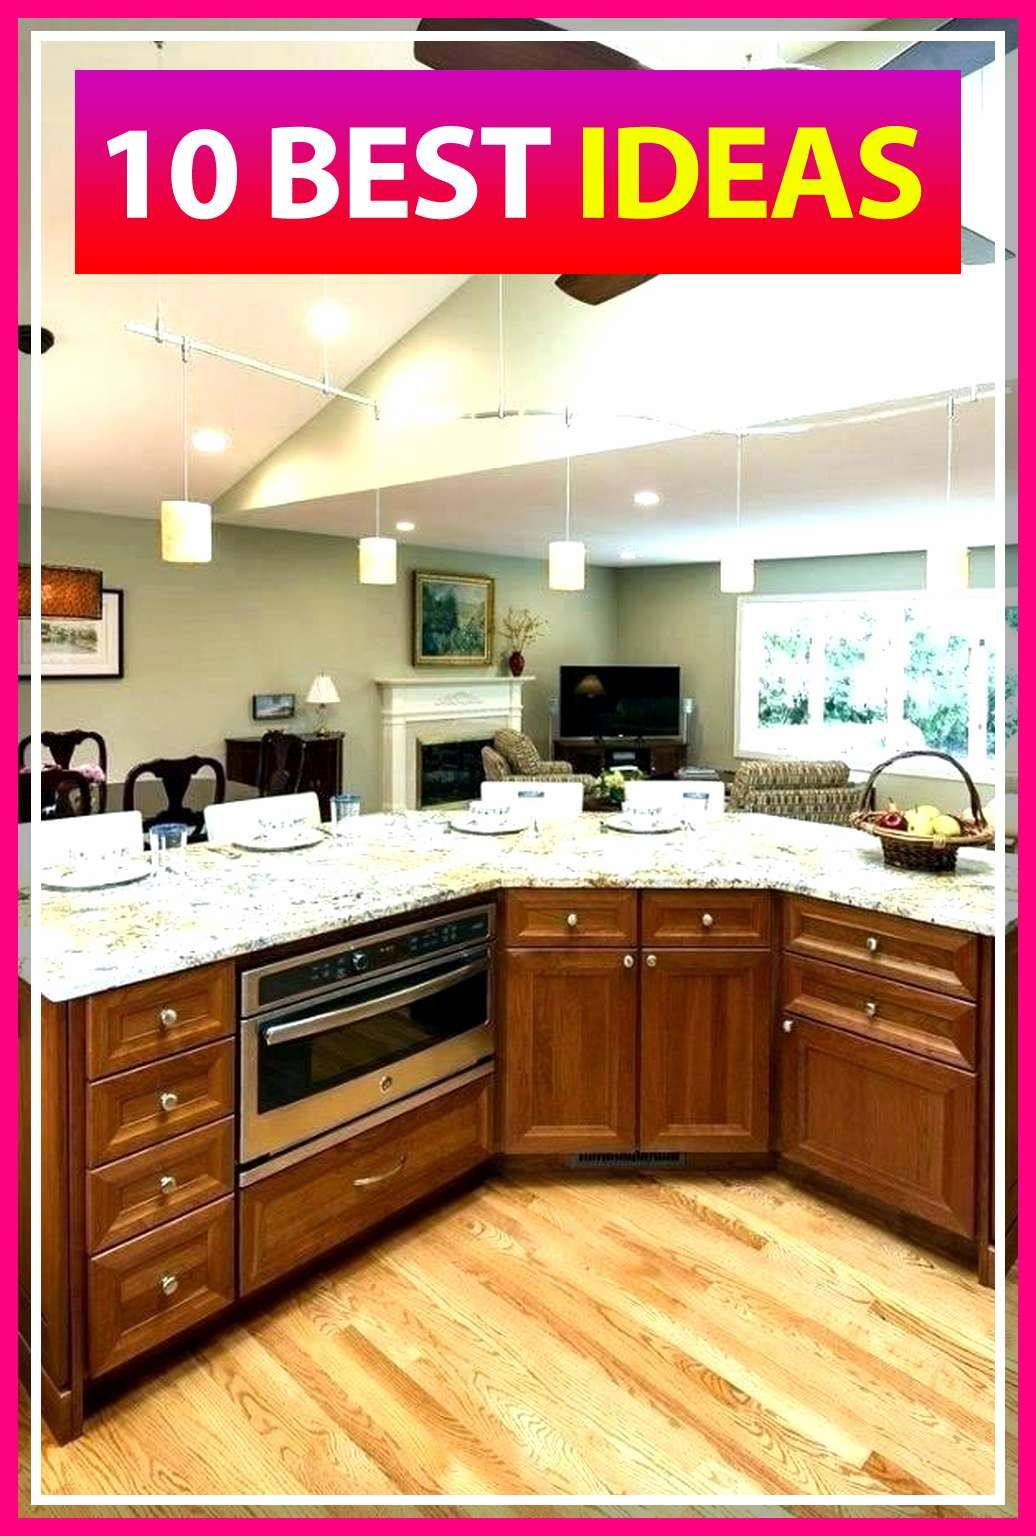 10x10 Kitchen Cabinets: This Is 10 Magnificient 10x10 Kitchen Cabinets Layout Easy